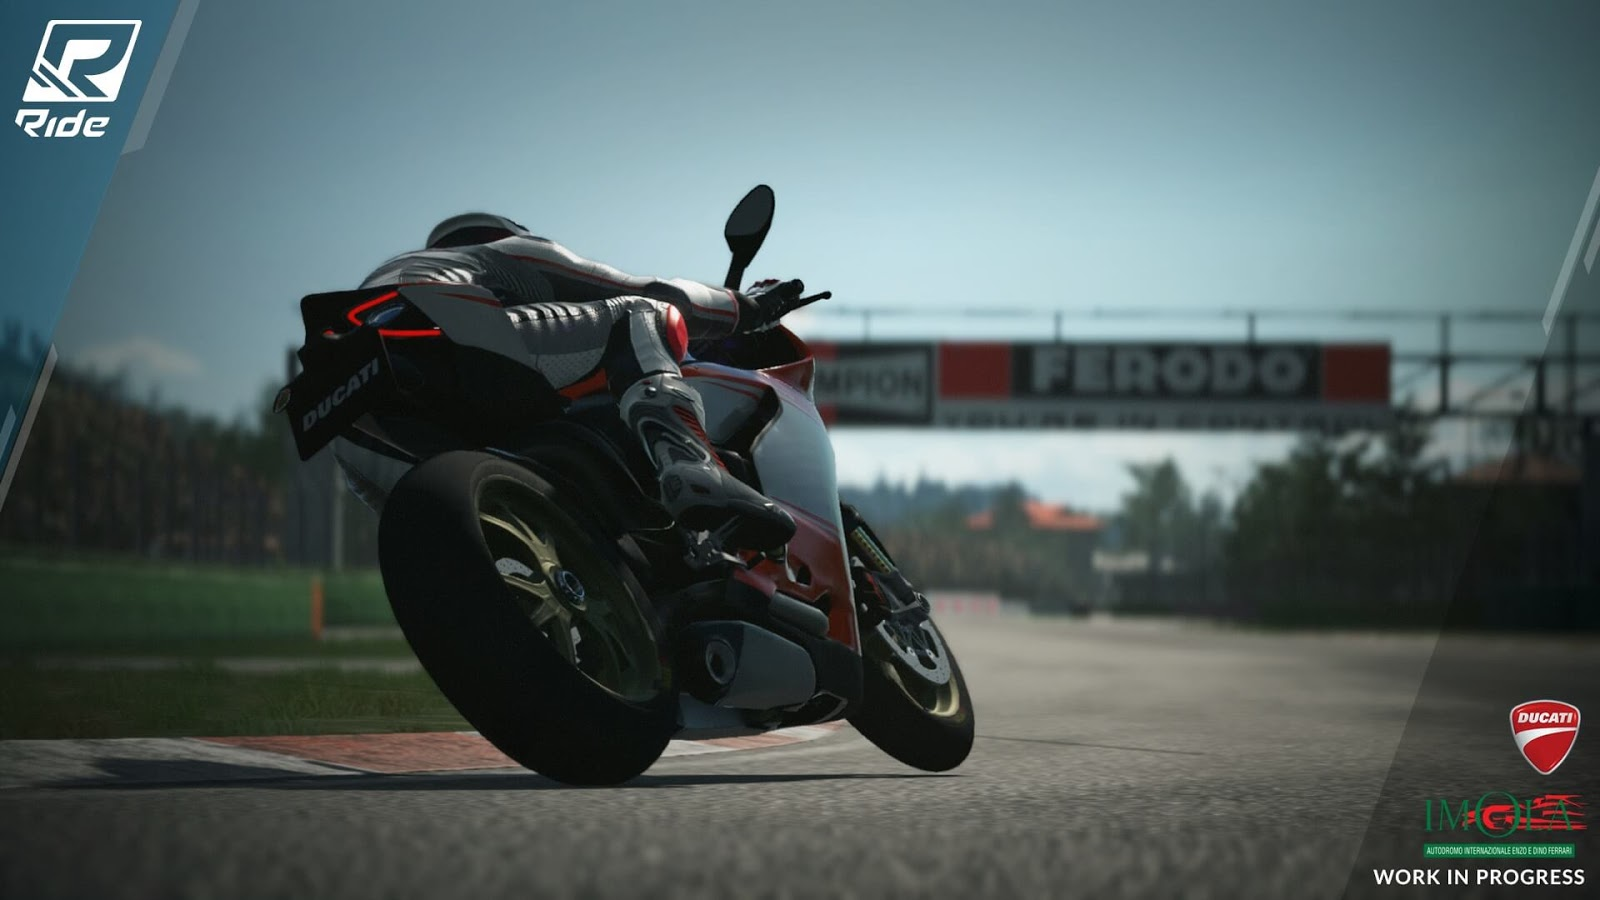 Ride Game Wallpaper Ride-2015-bike-game-screenshot